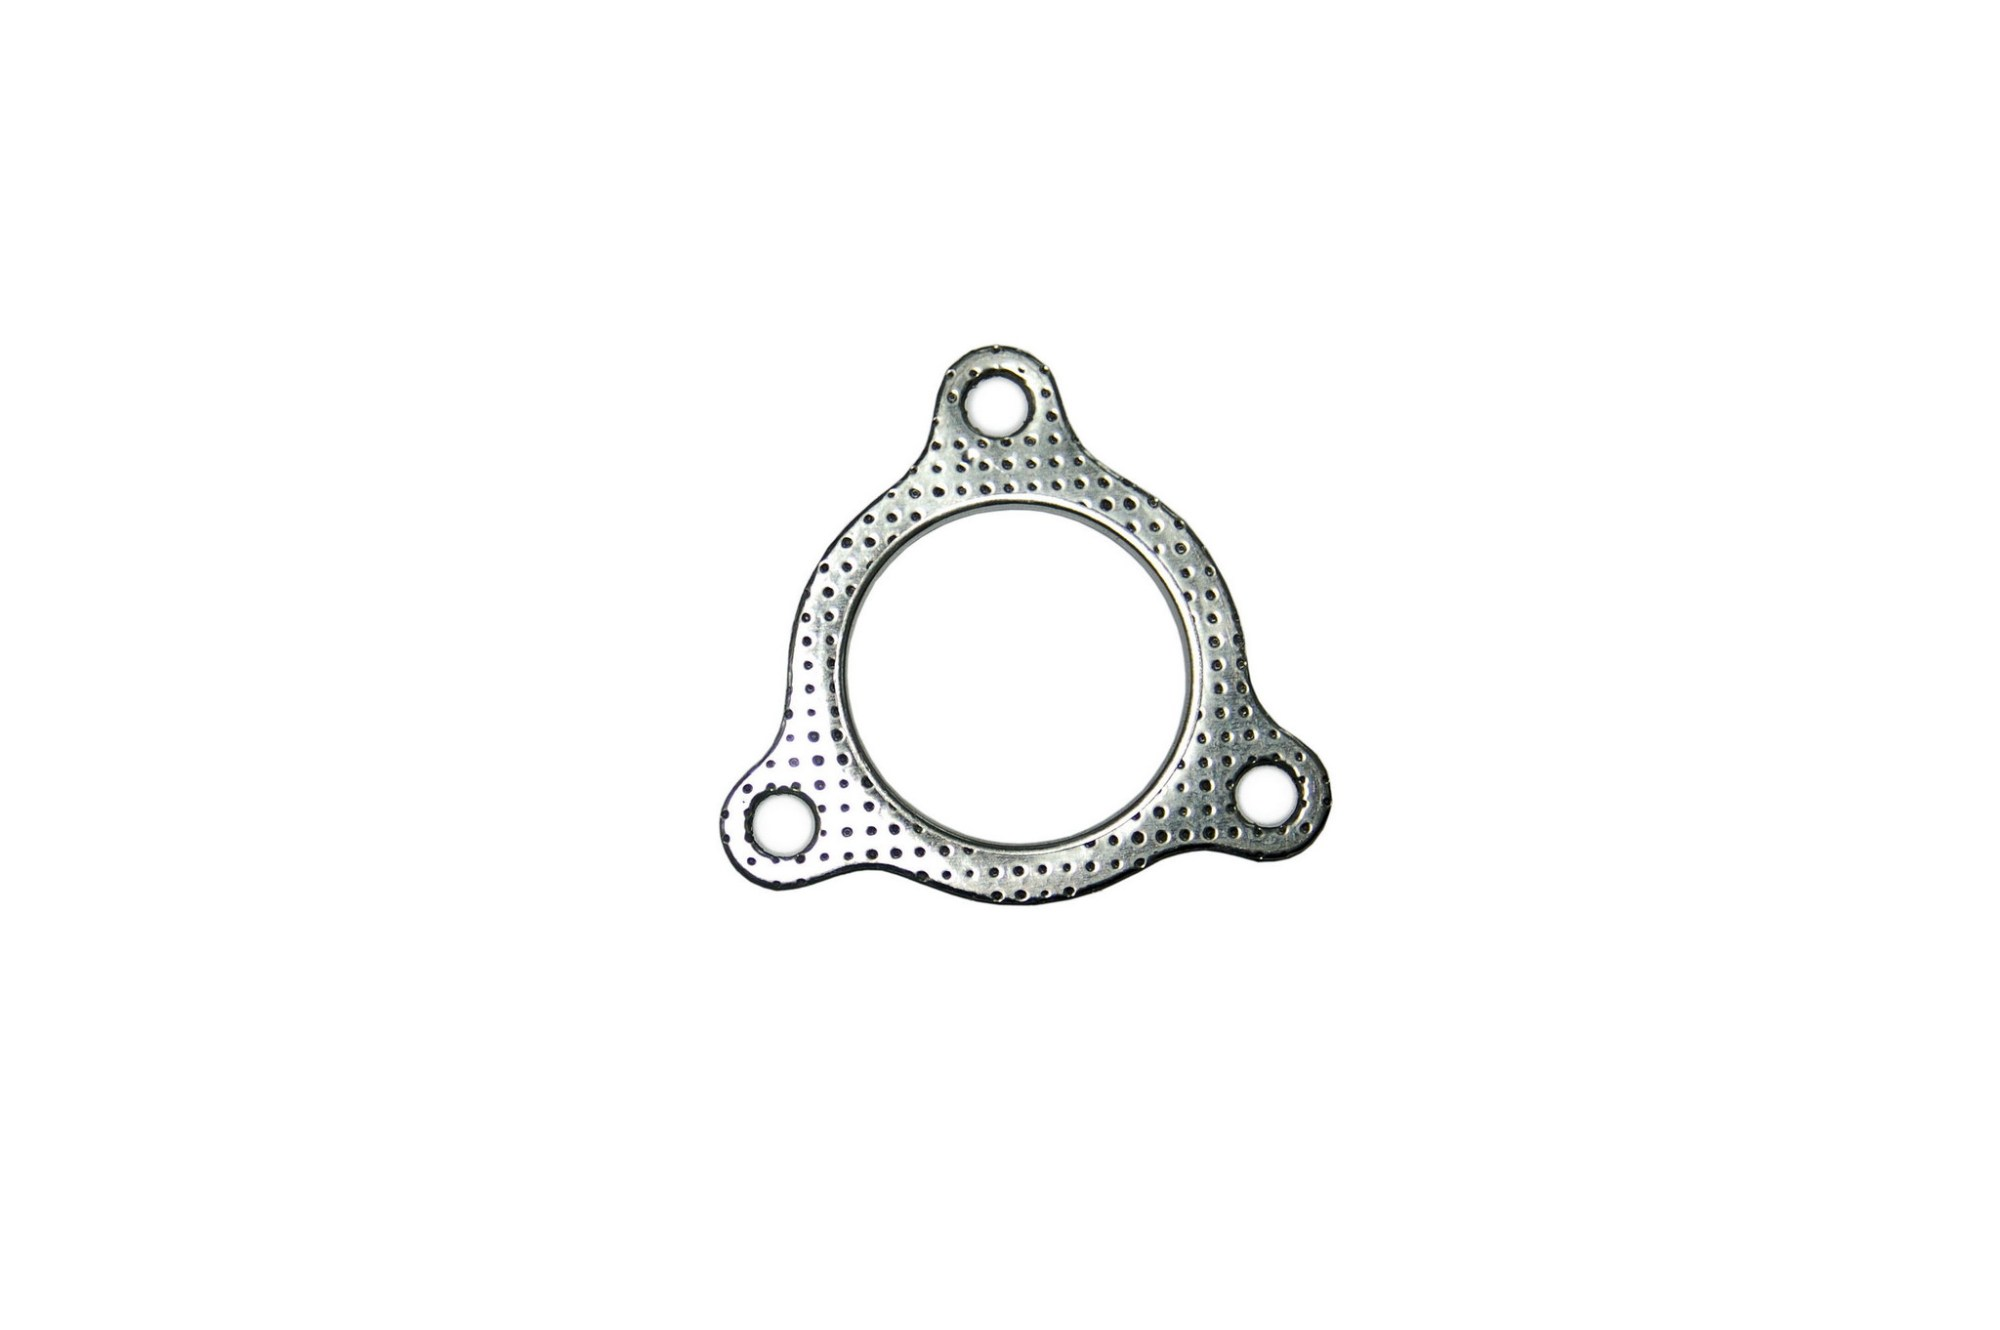 hight resolution of 2000 mitsubishi eclipse exhaust pipe flange gasket bo 256 1078